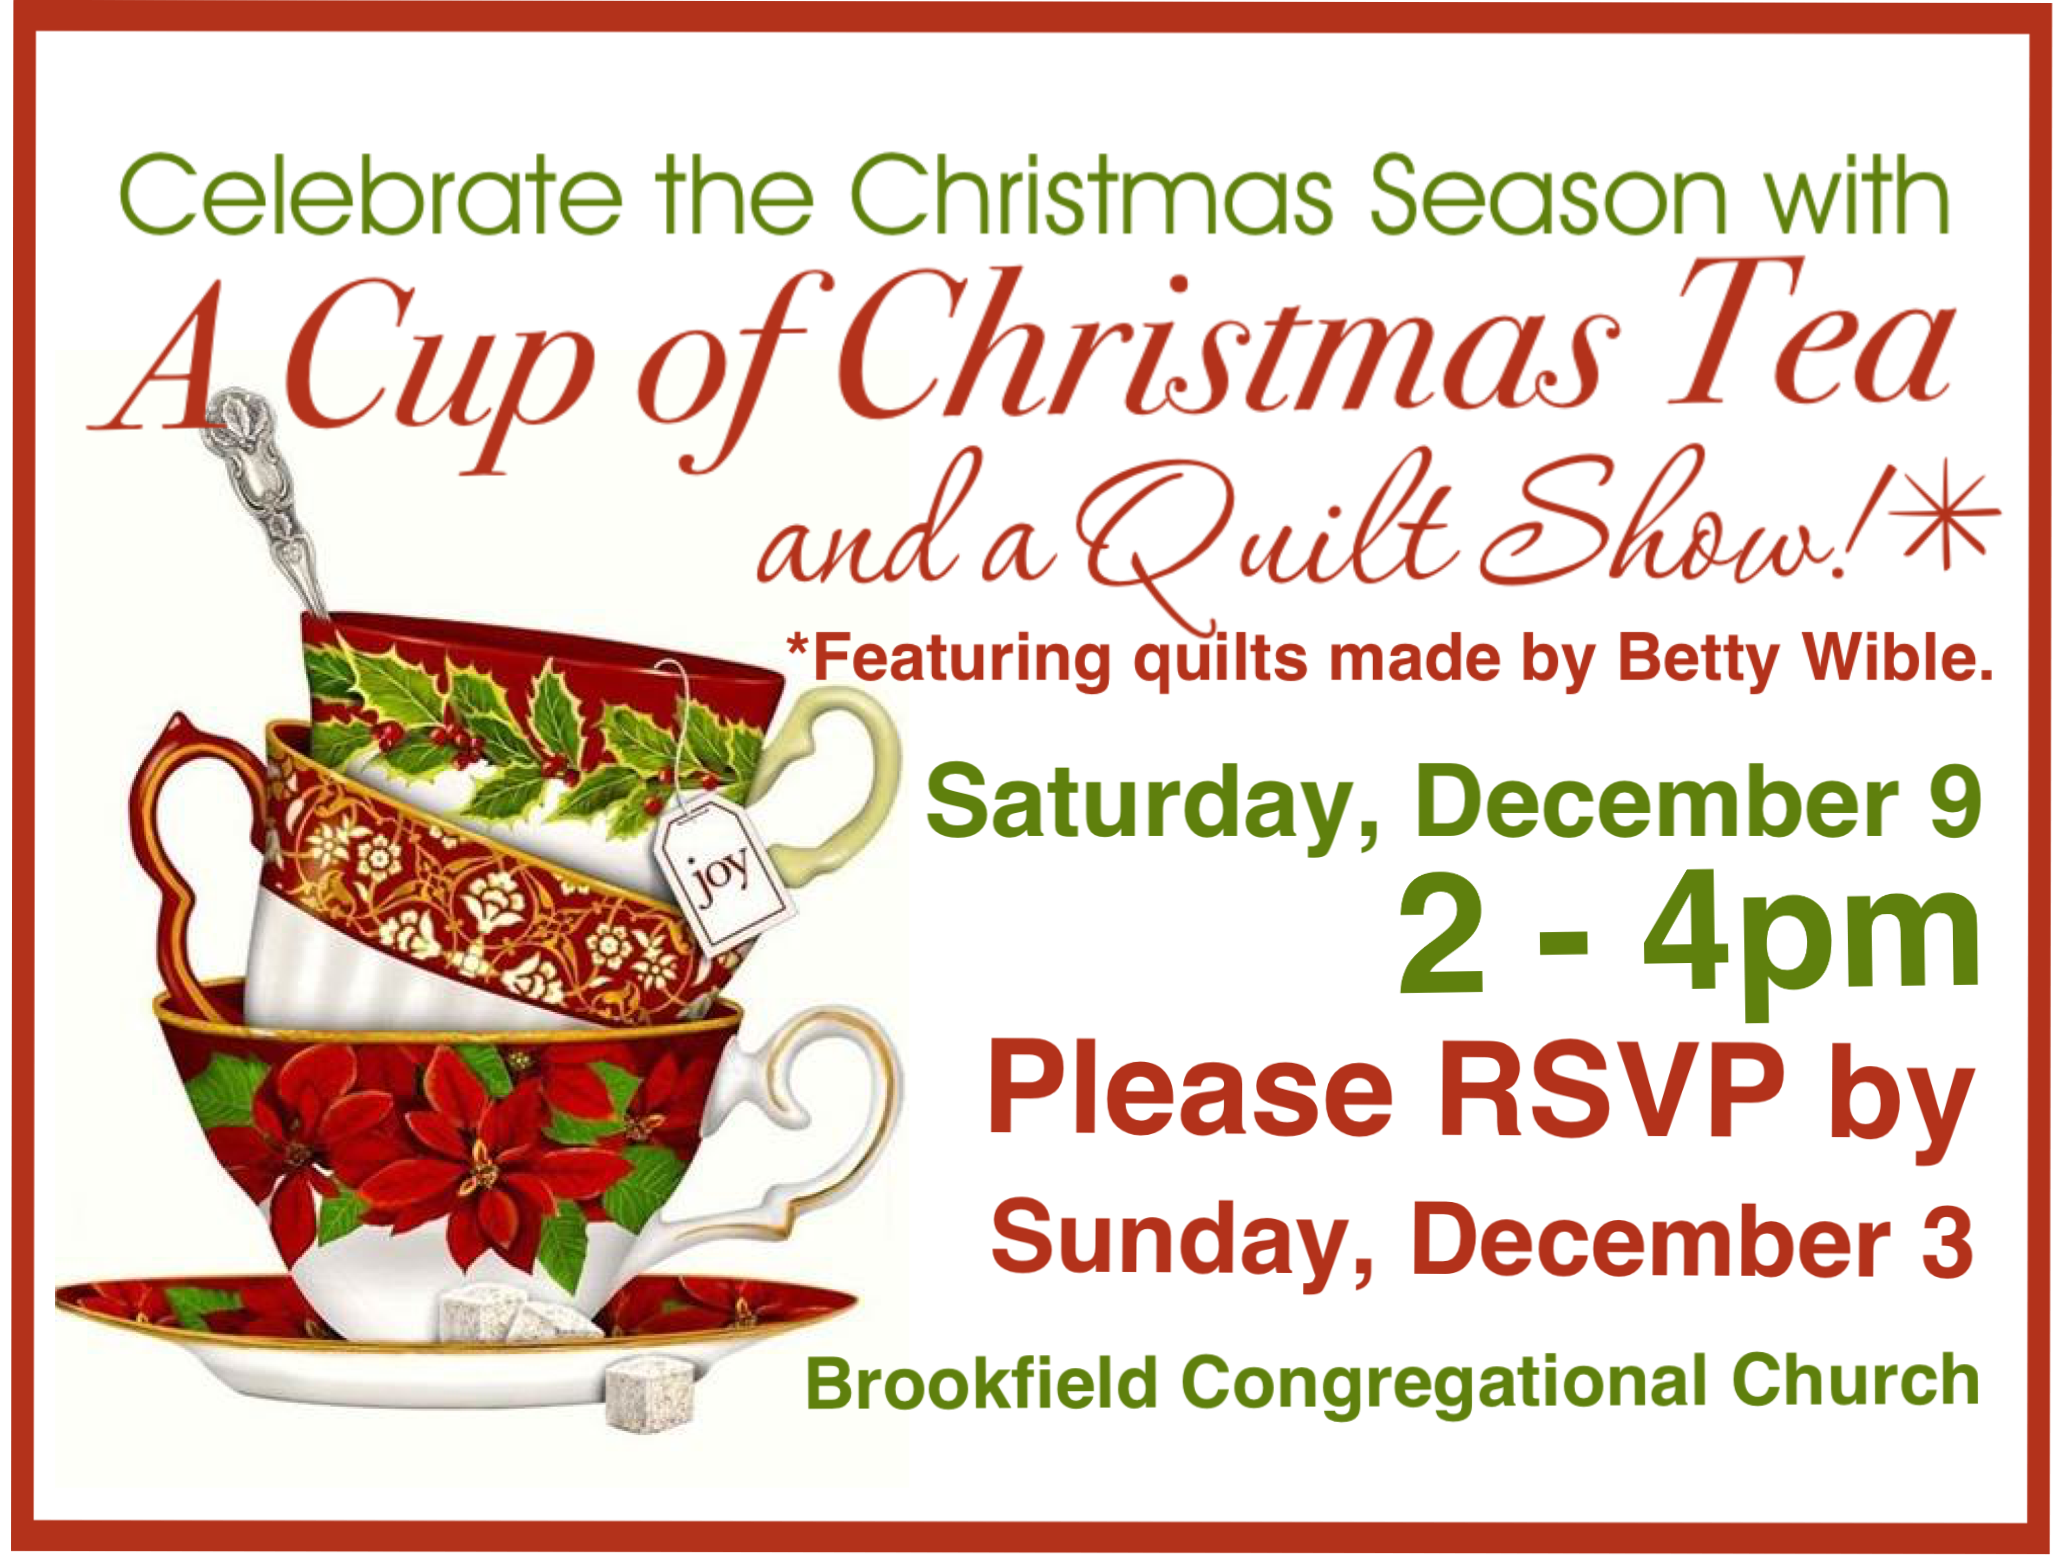 a cup of christmas tea quilt show brookfield congregational church - A Cup Of Christmas Tea